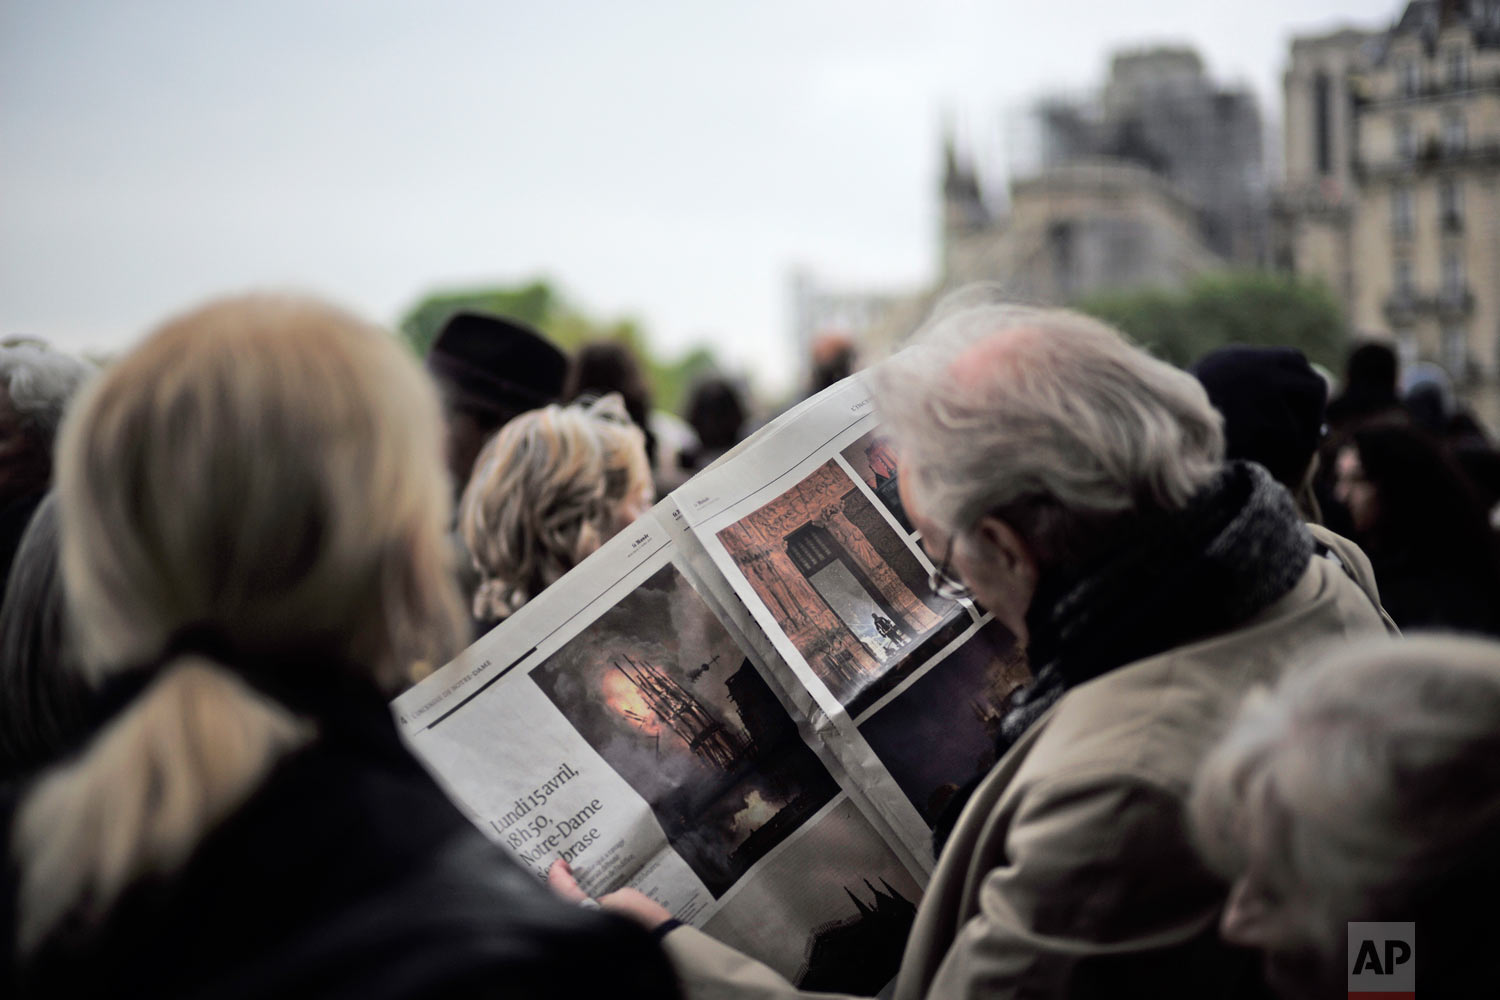 A man looks at pictures of the burning Notre Dame Cathedral in a newspaper as he and others gather near the damaged cathedral, rear, after the fire in Paris, April 16, 2019. (AP Photo/Kamil Zihnioglu)